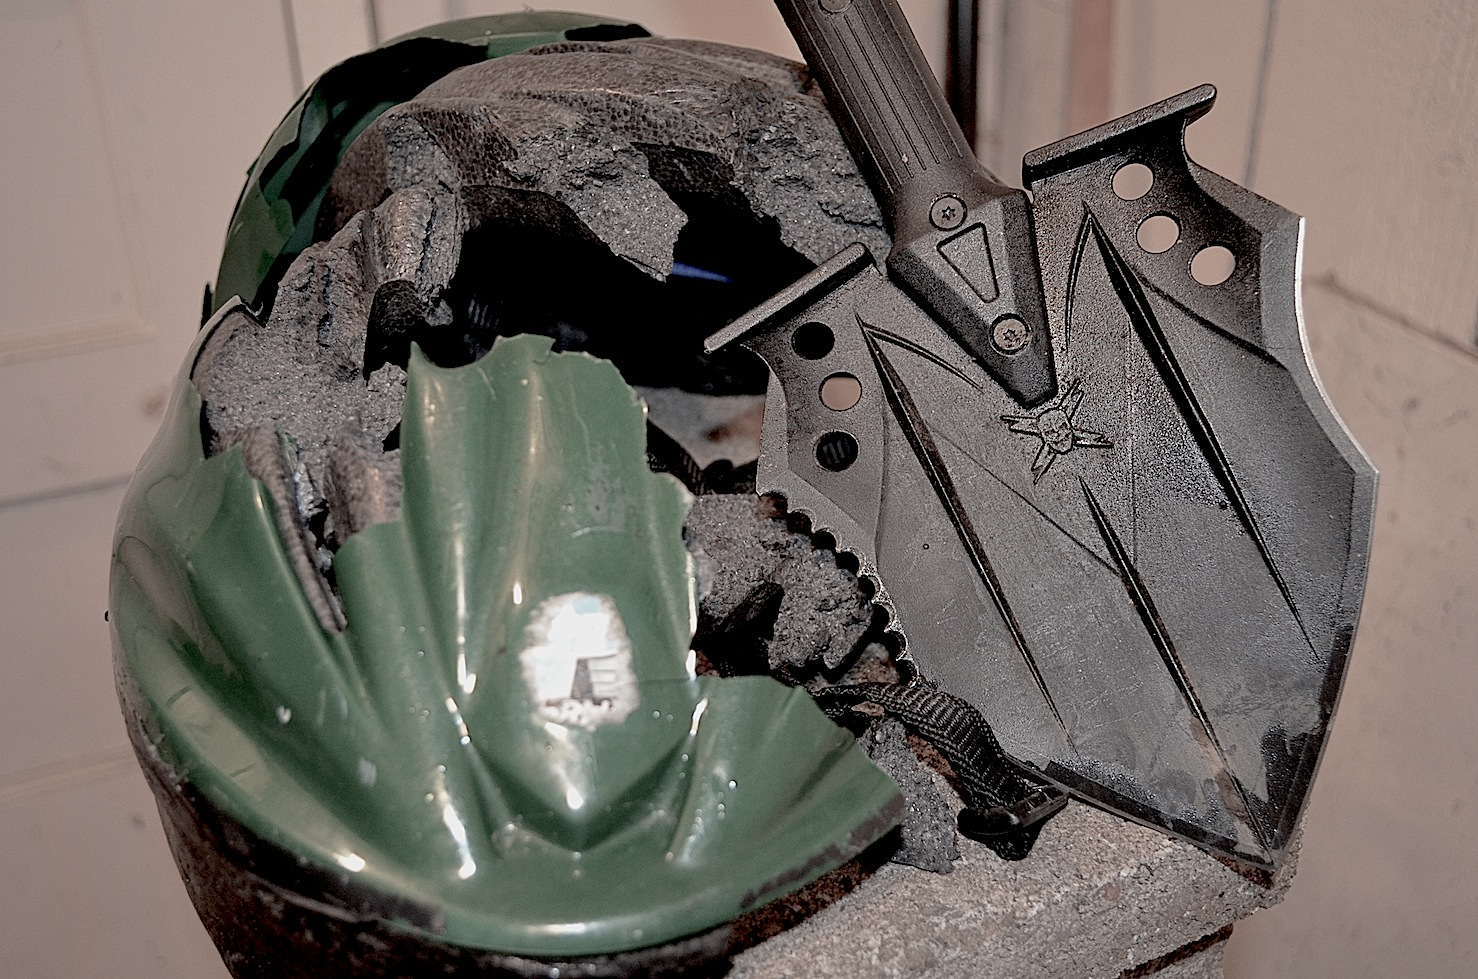 M48 Kommando Tactical Survival Shovel Doubles as Saw and Knife, is Perfect for Zombie Fighting